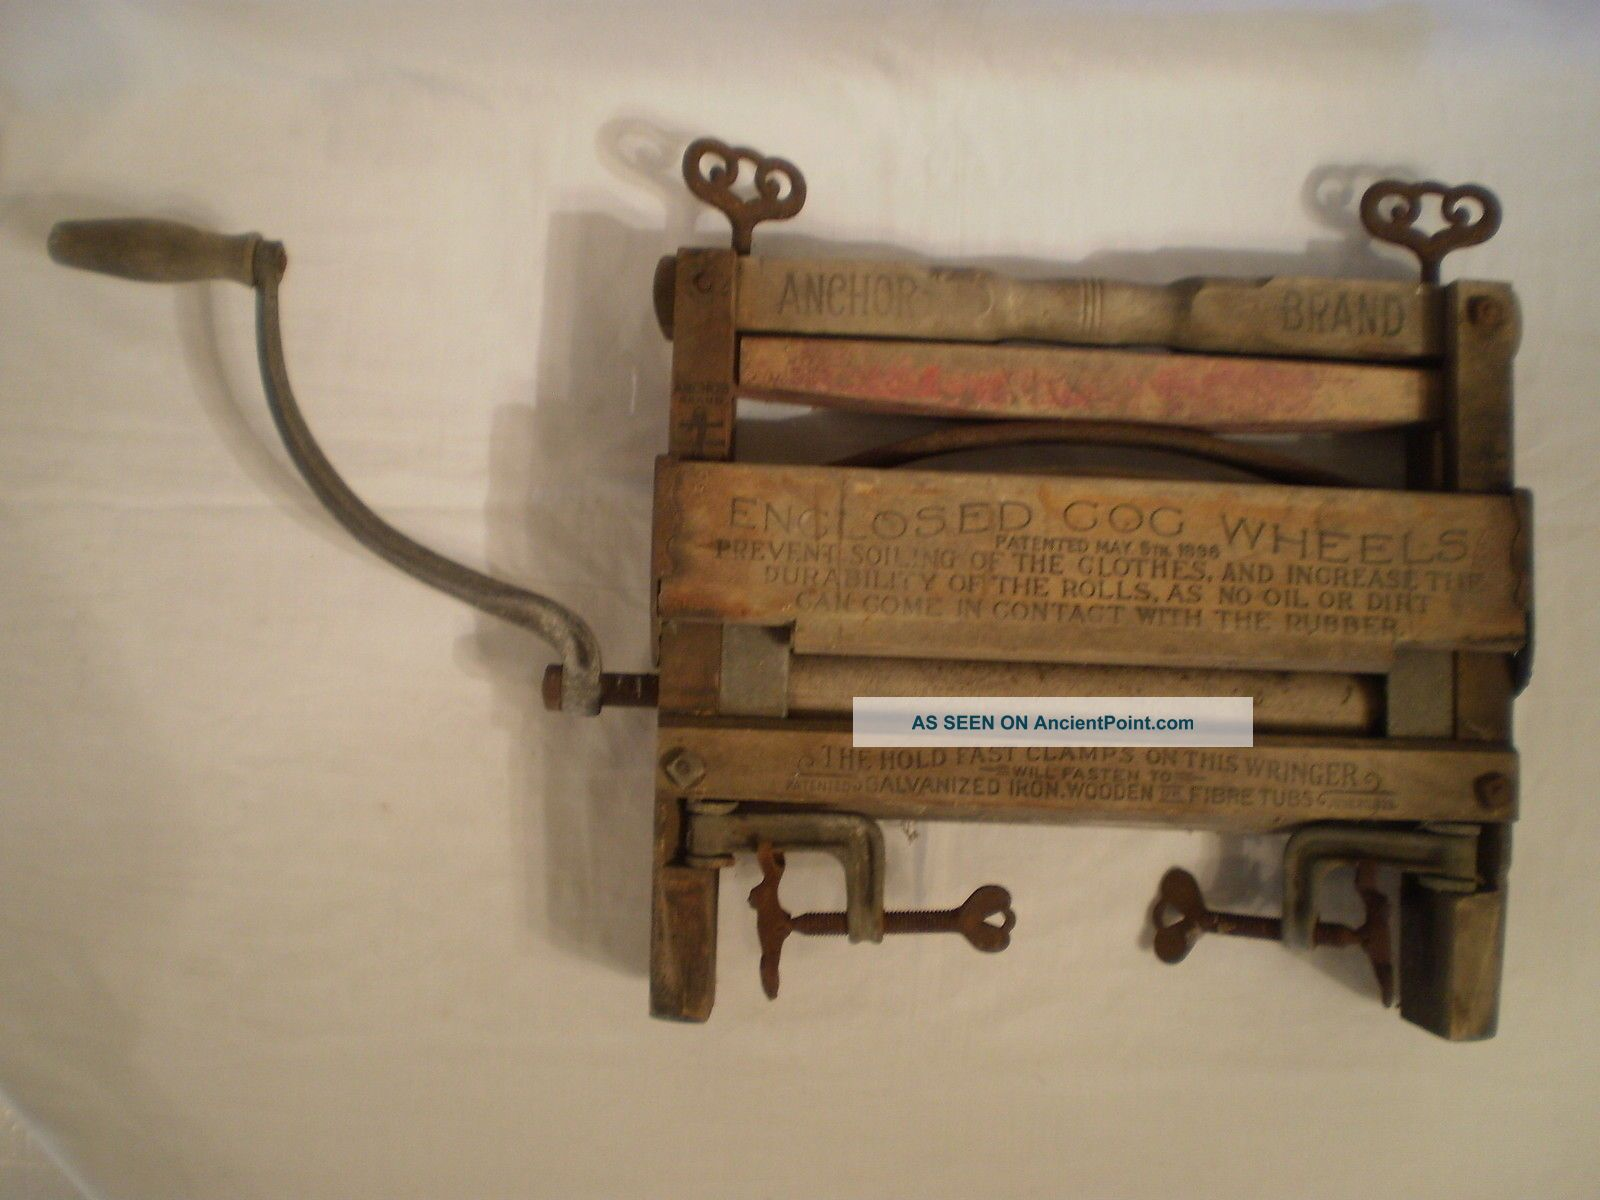 Antique Anchor Brand Lovell Mfg.  Co.  Hand Crank Clothes Wringer Erie Pa No.  791 Clothing Wringers photo